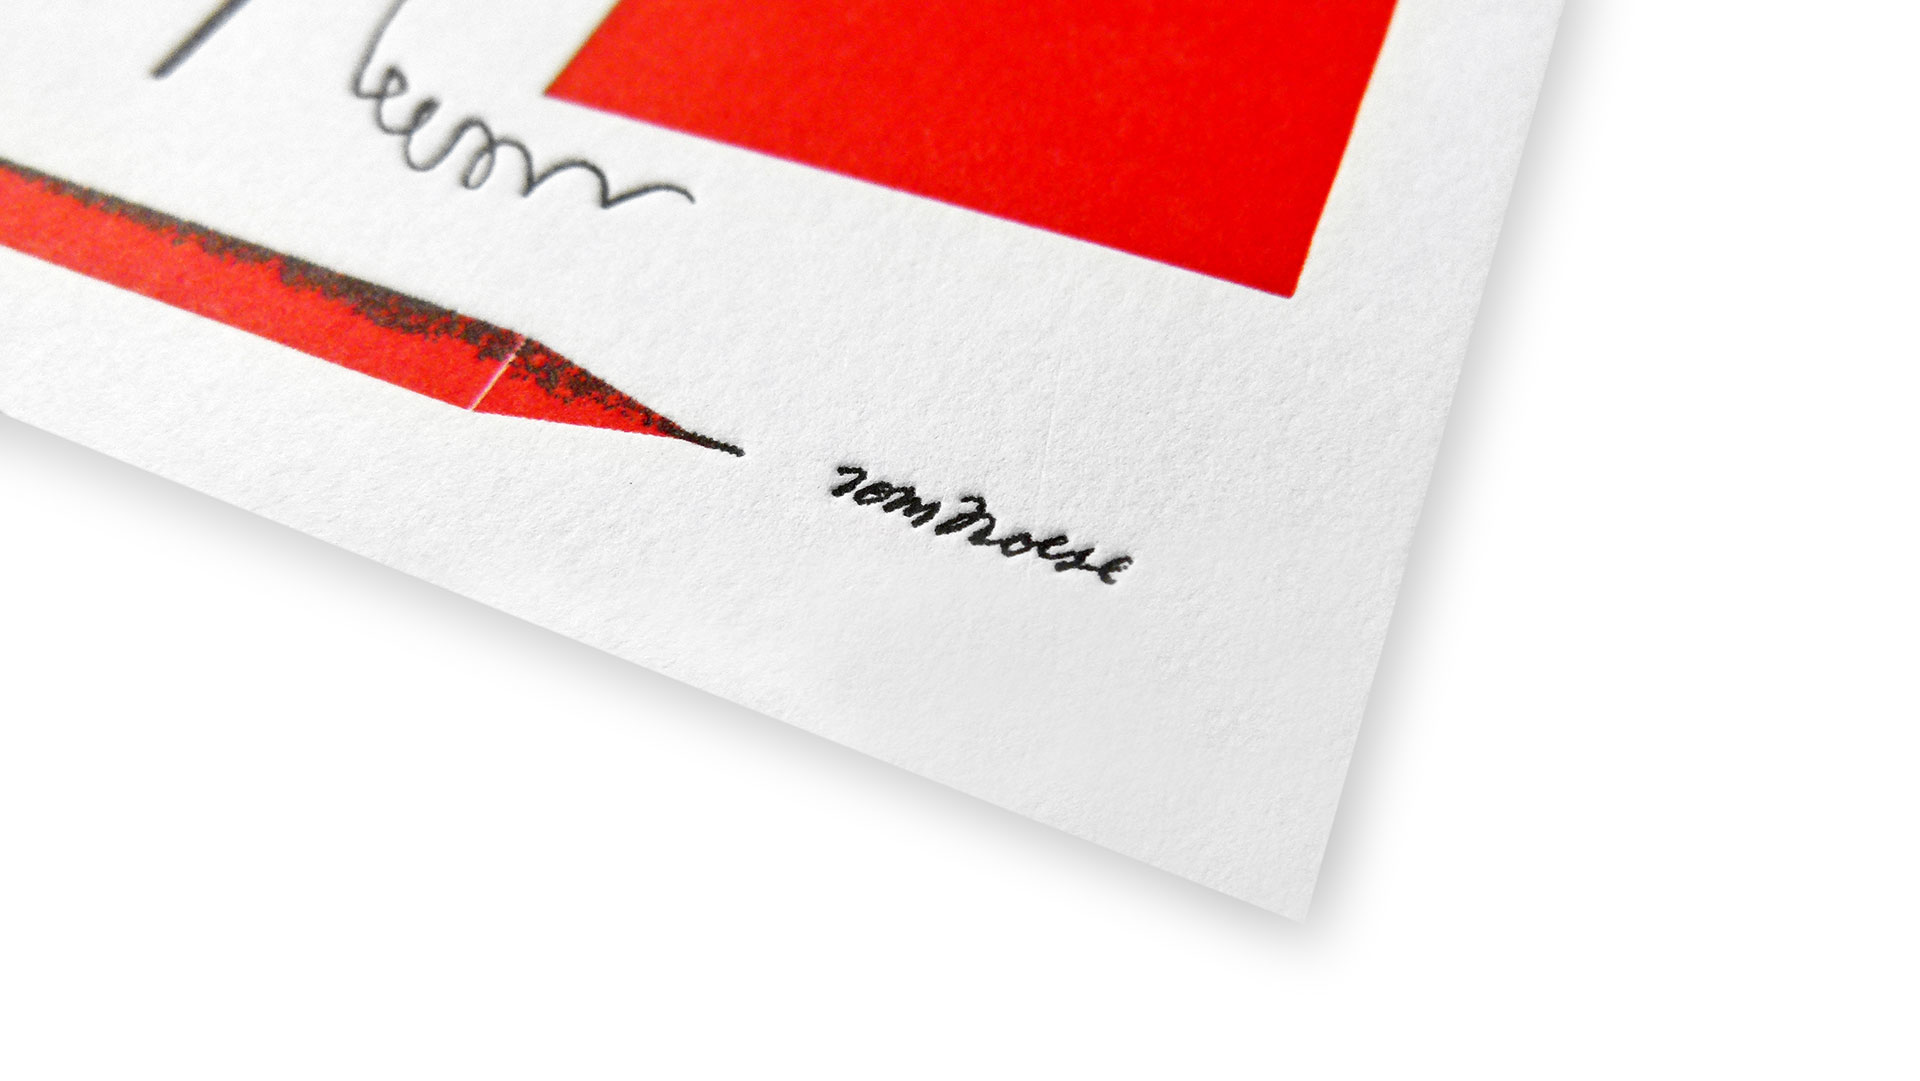 Tom Froese Stationery - PaperSpecs